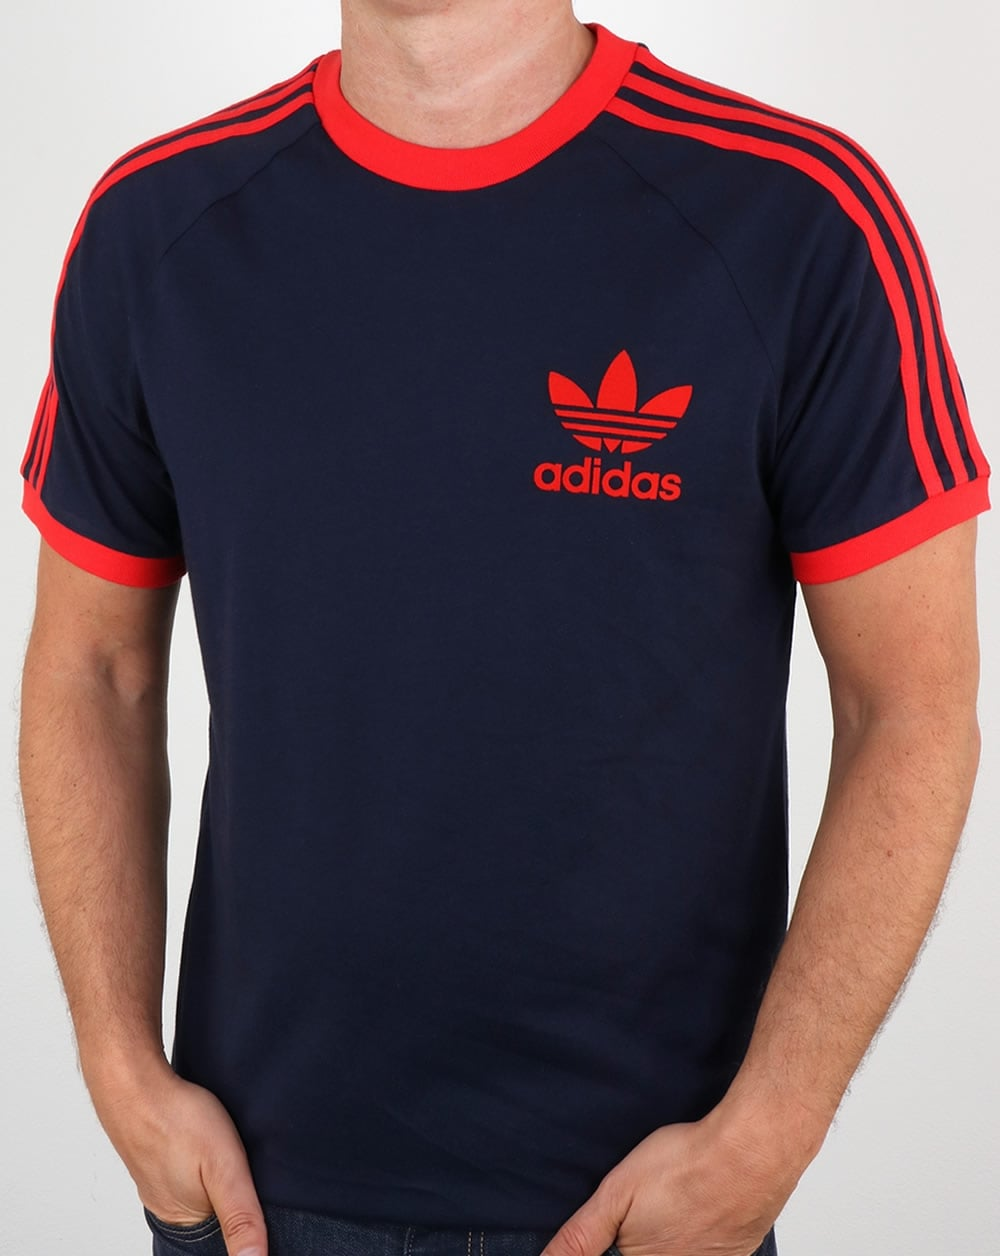 Adidas t shirt navy red california 3 stripes for Adidas lotus t shirt